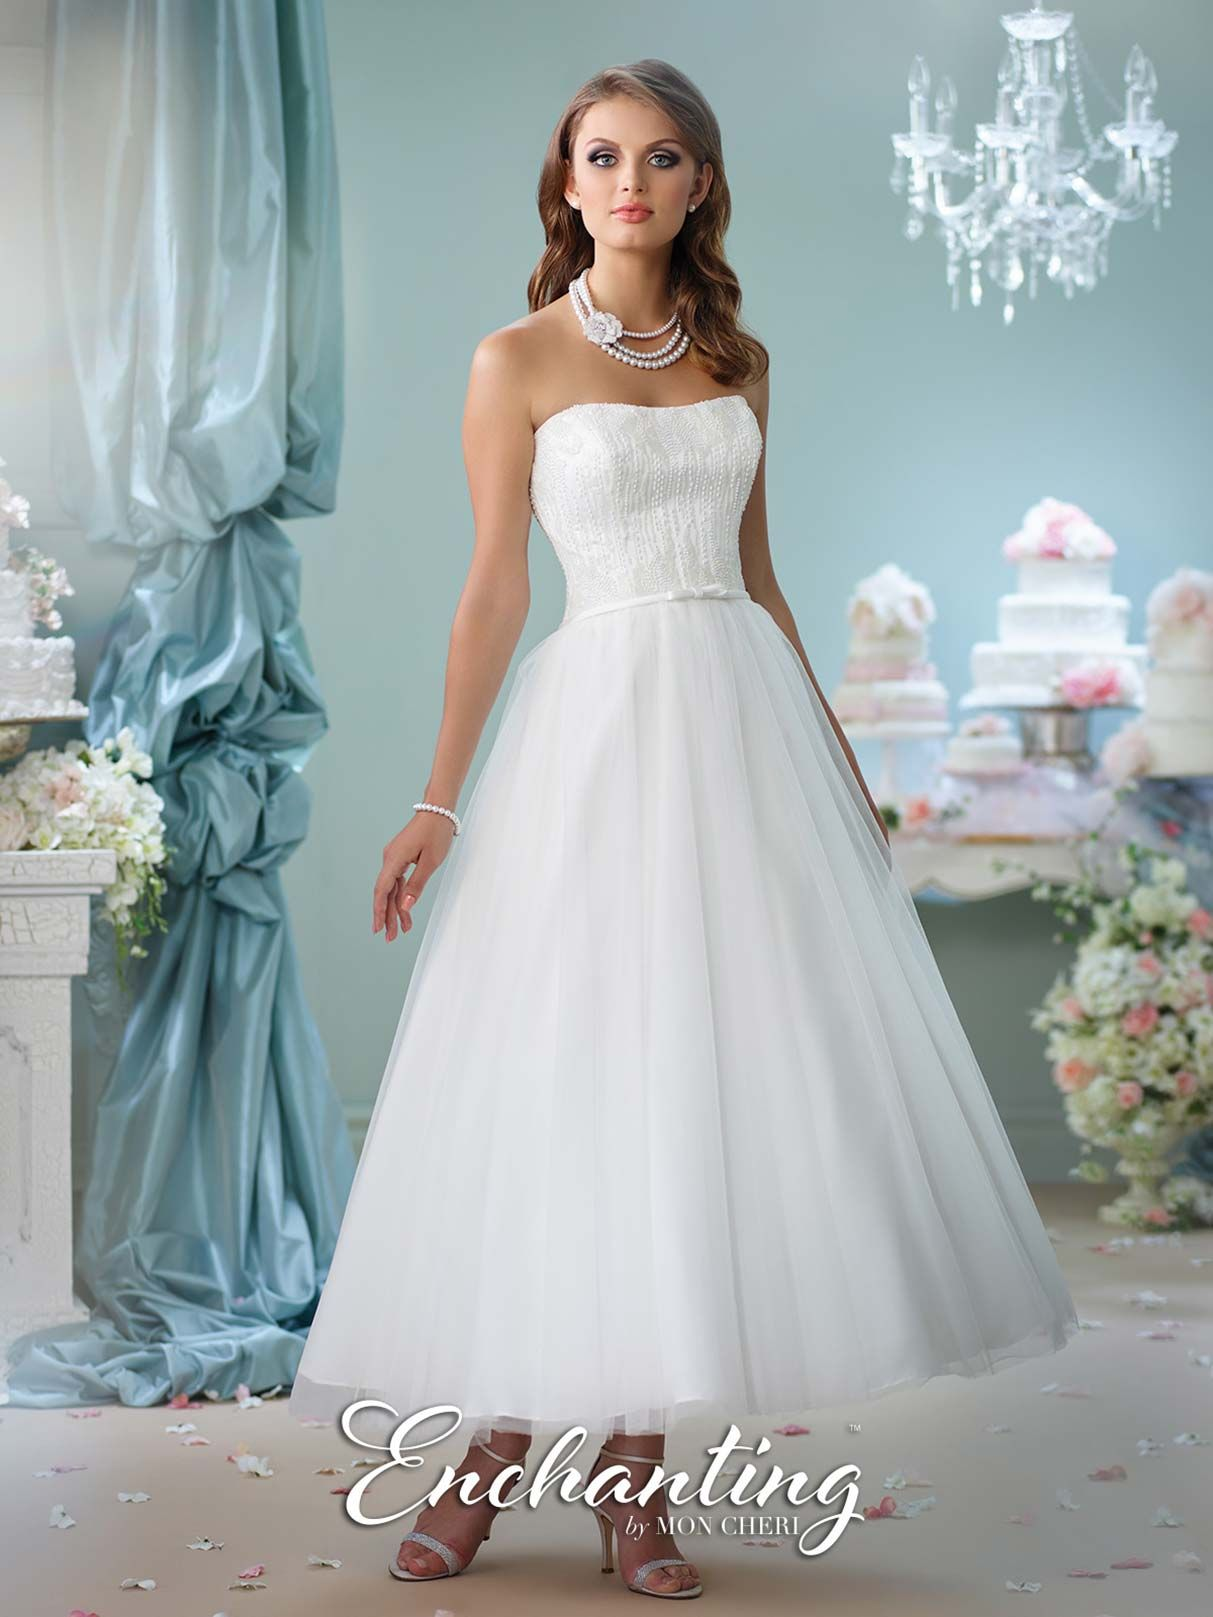 Perfect Modern Wedding Outfits Ensign - All Wedding Dresses ...